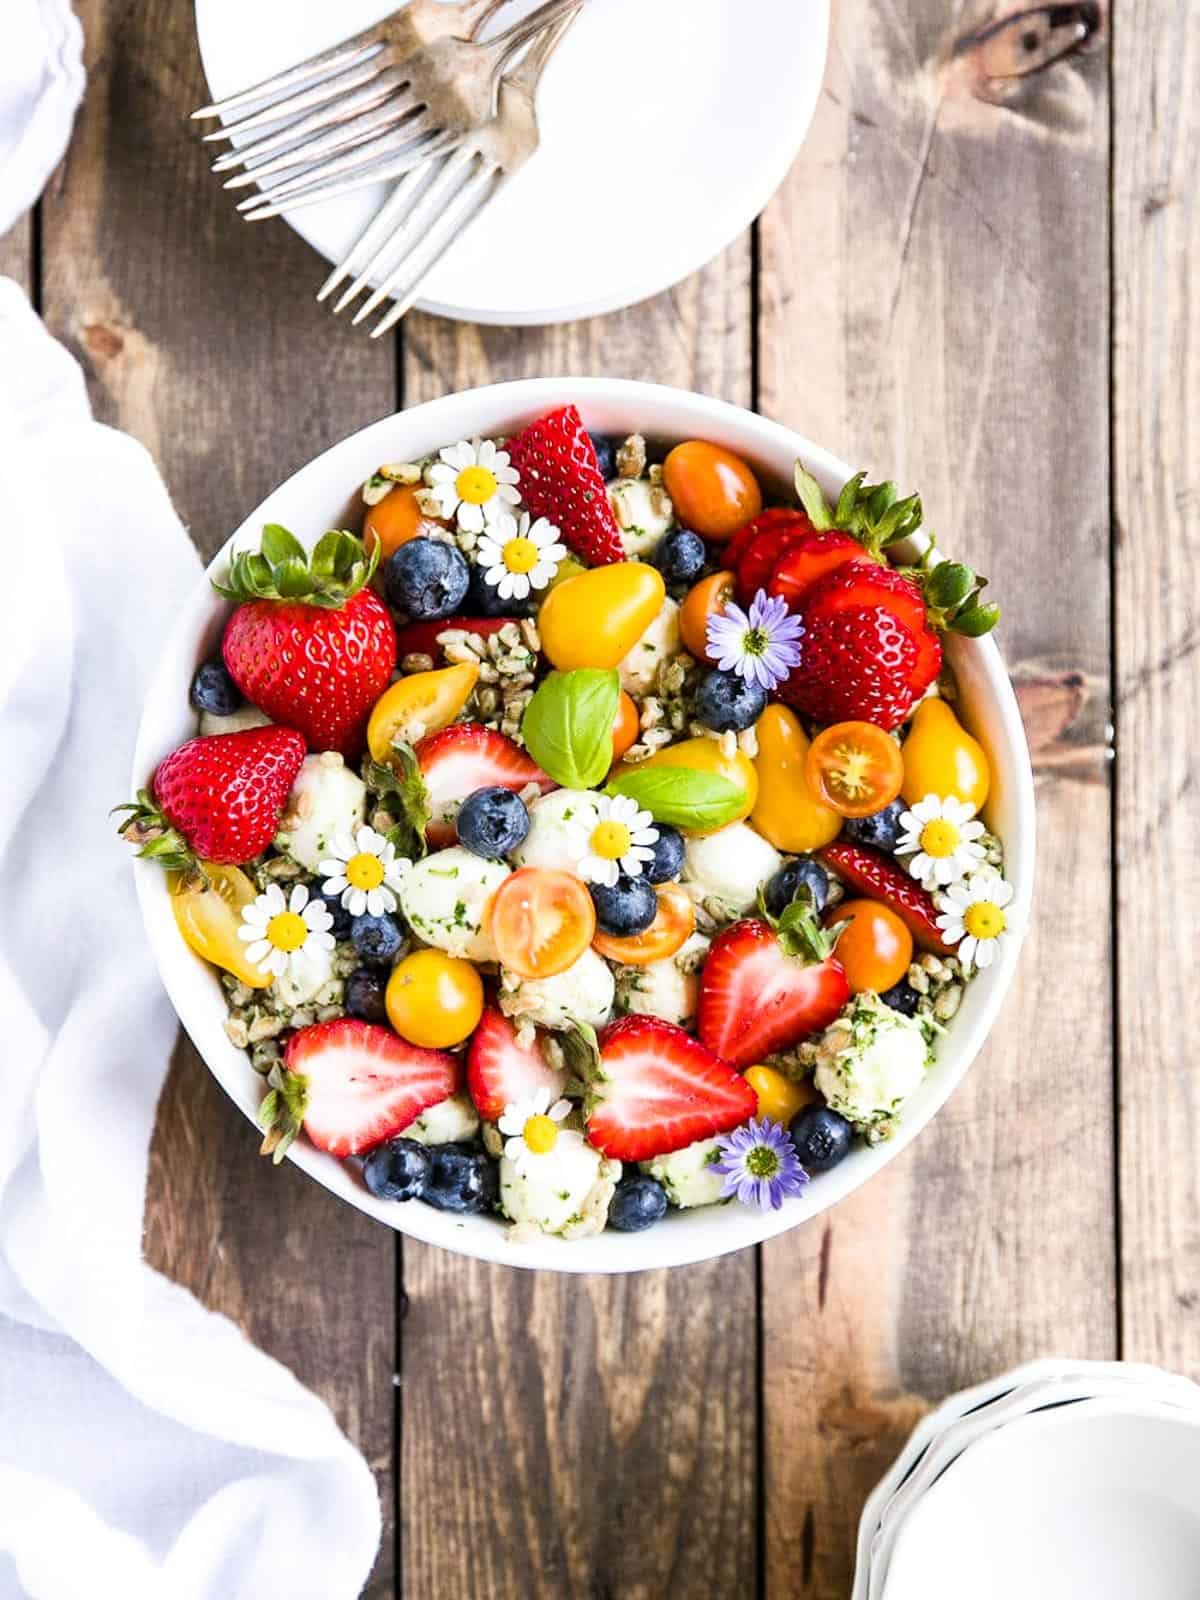 A strawberry, tomato summer salad garnished with little daisies.